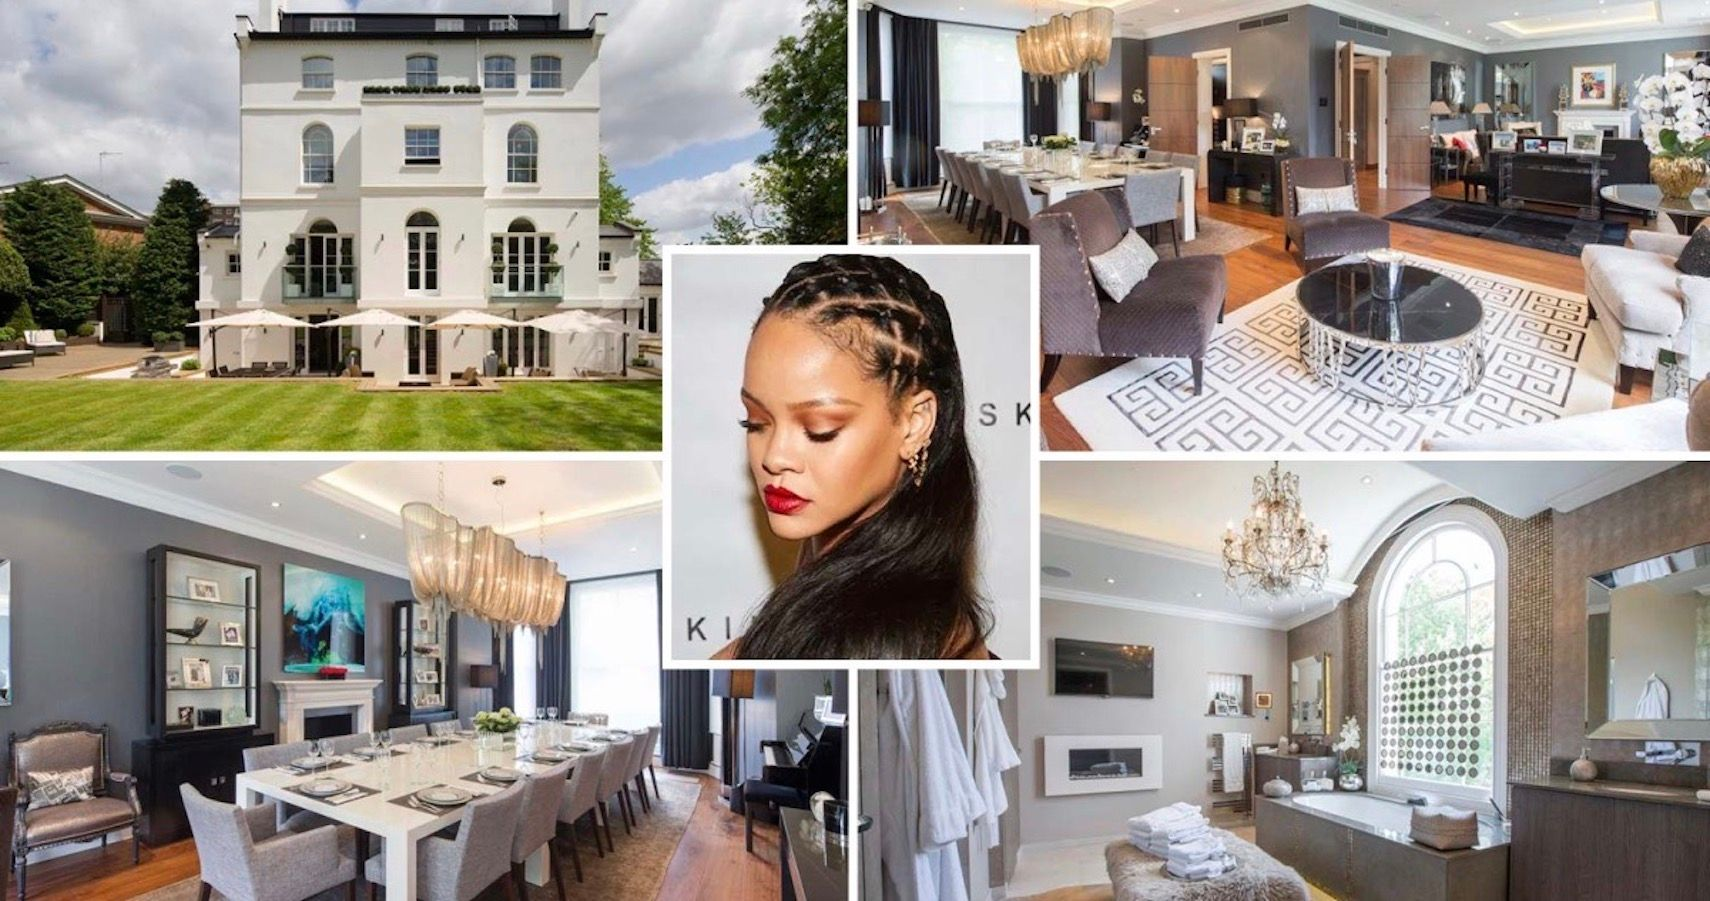 Rihanna's London Home Is Being Sold For $41 million